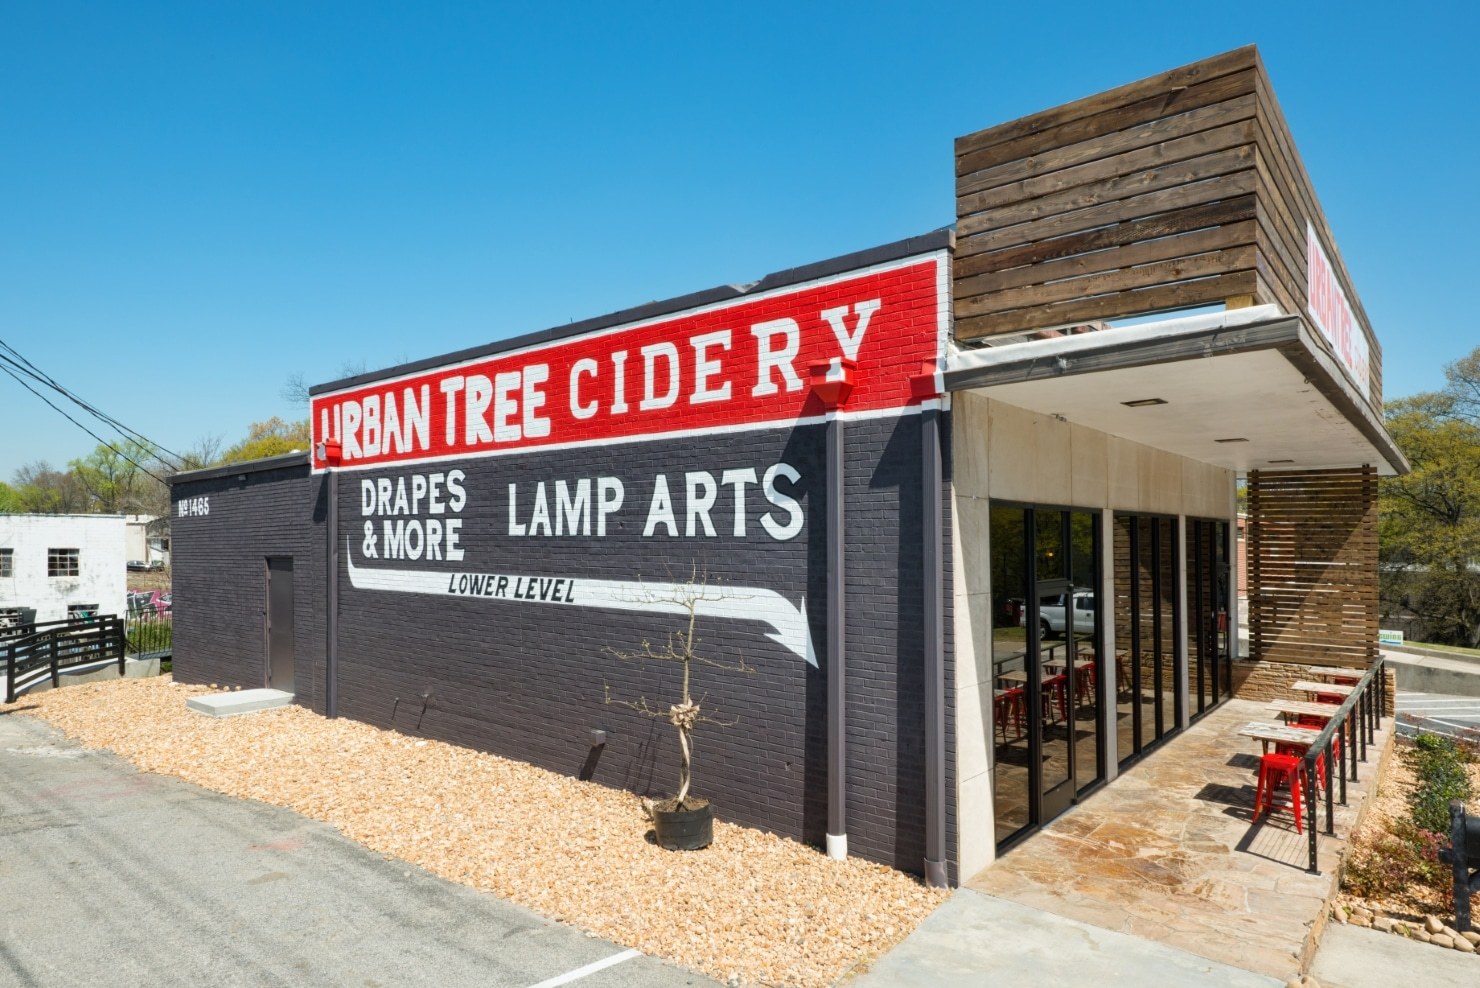 Urban Tree Cidery Renovation